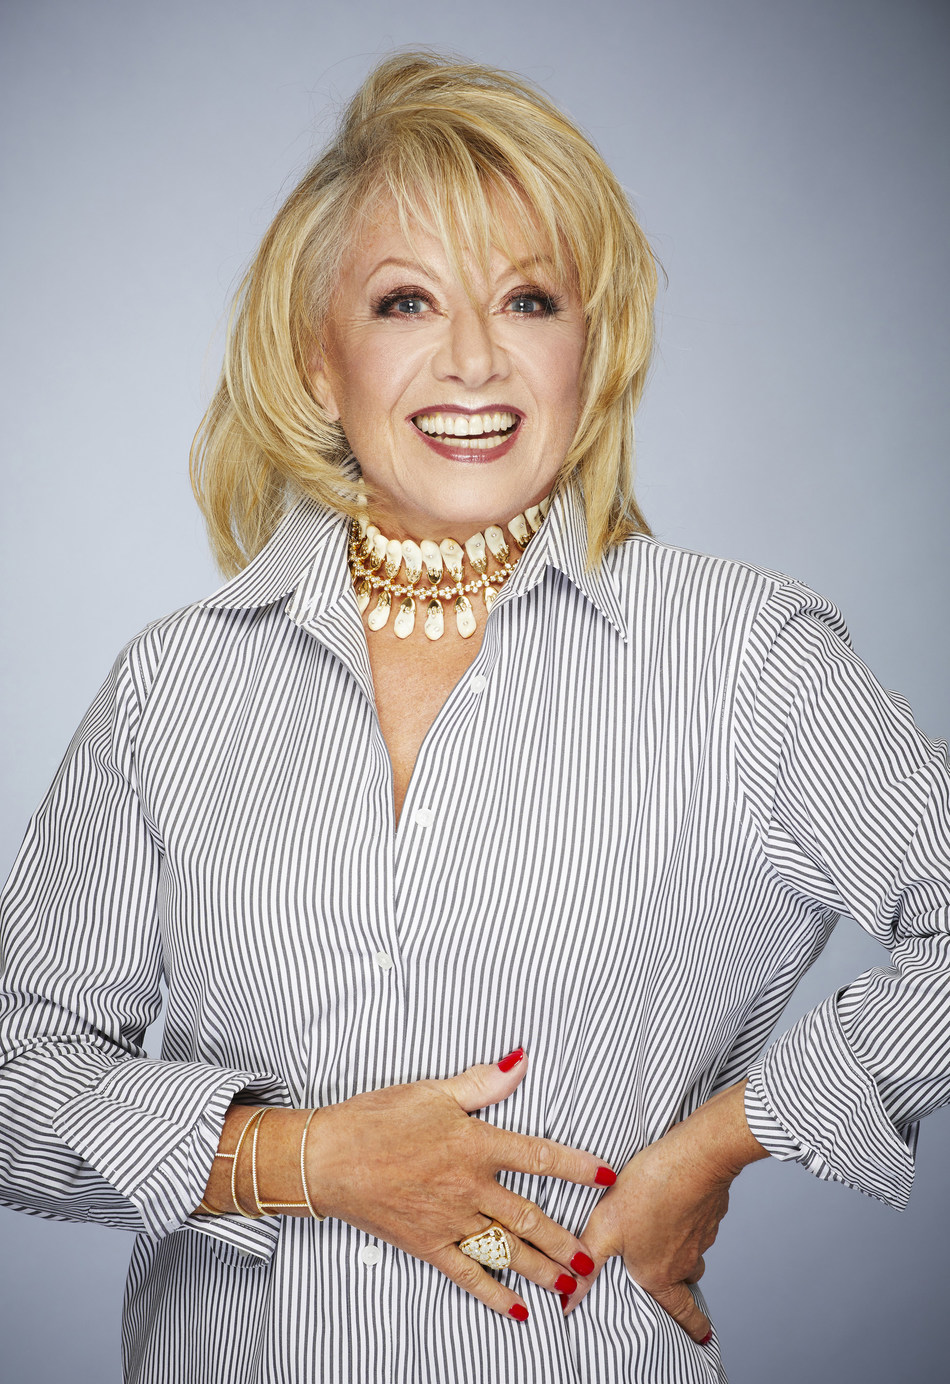 One of the world's best-loved and most highly awarded actresses and singers, Elaine Paige, will serve as godmother to Seabourn's elegant new all-suite ship, Seabourn Ovation.